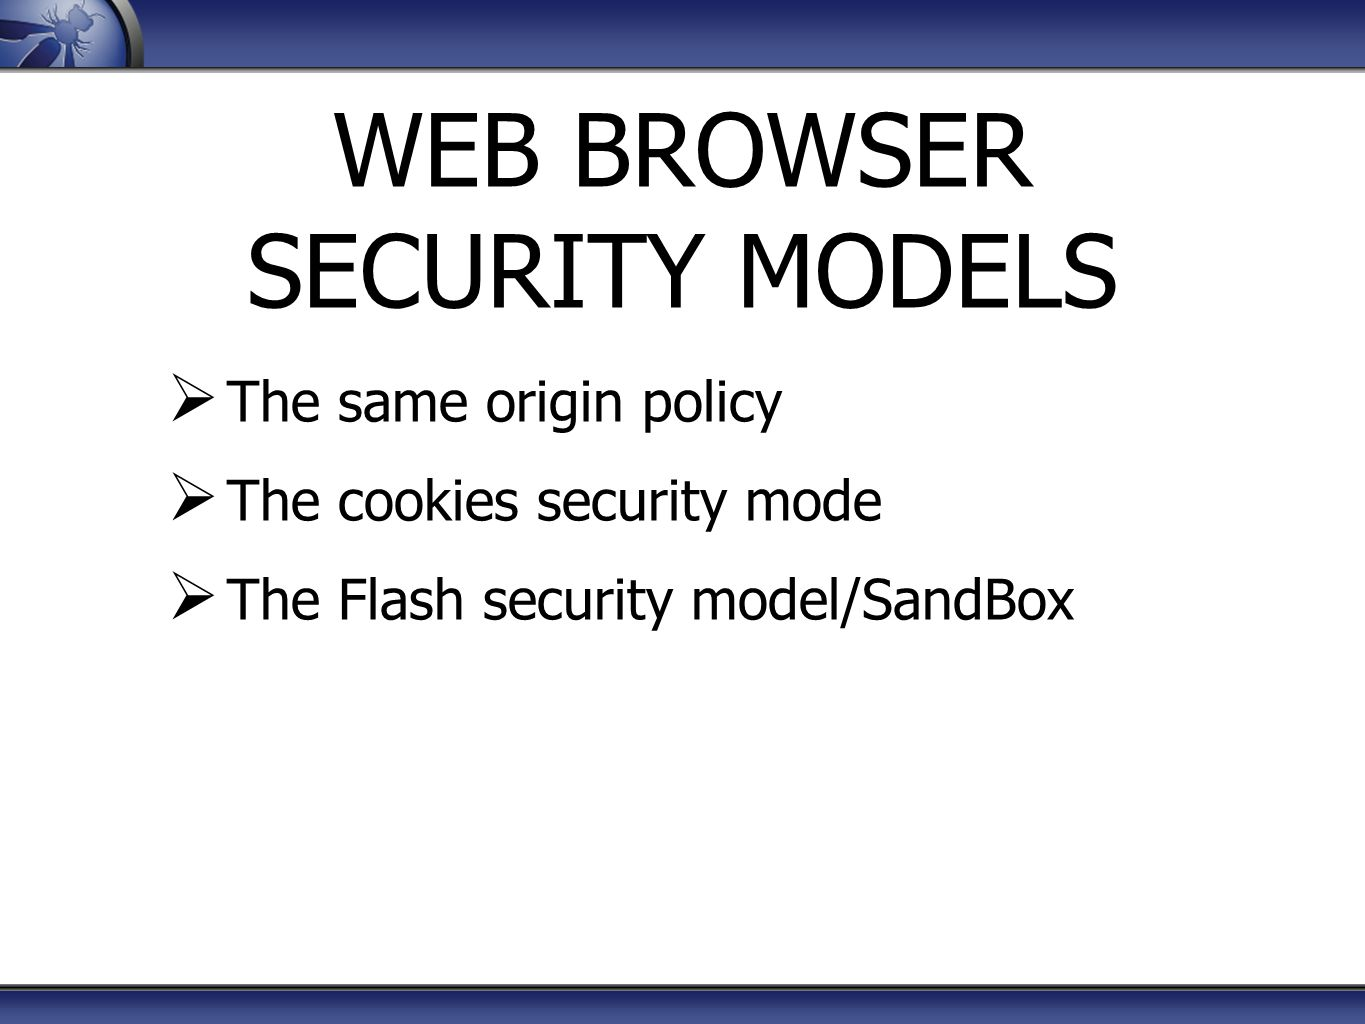 WEB BROWSER SECURITY MODELS